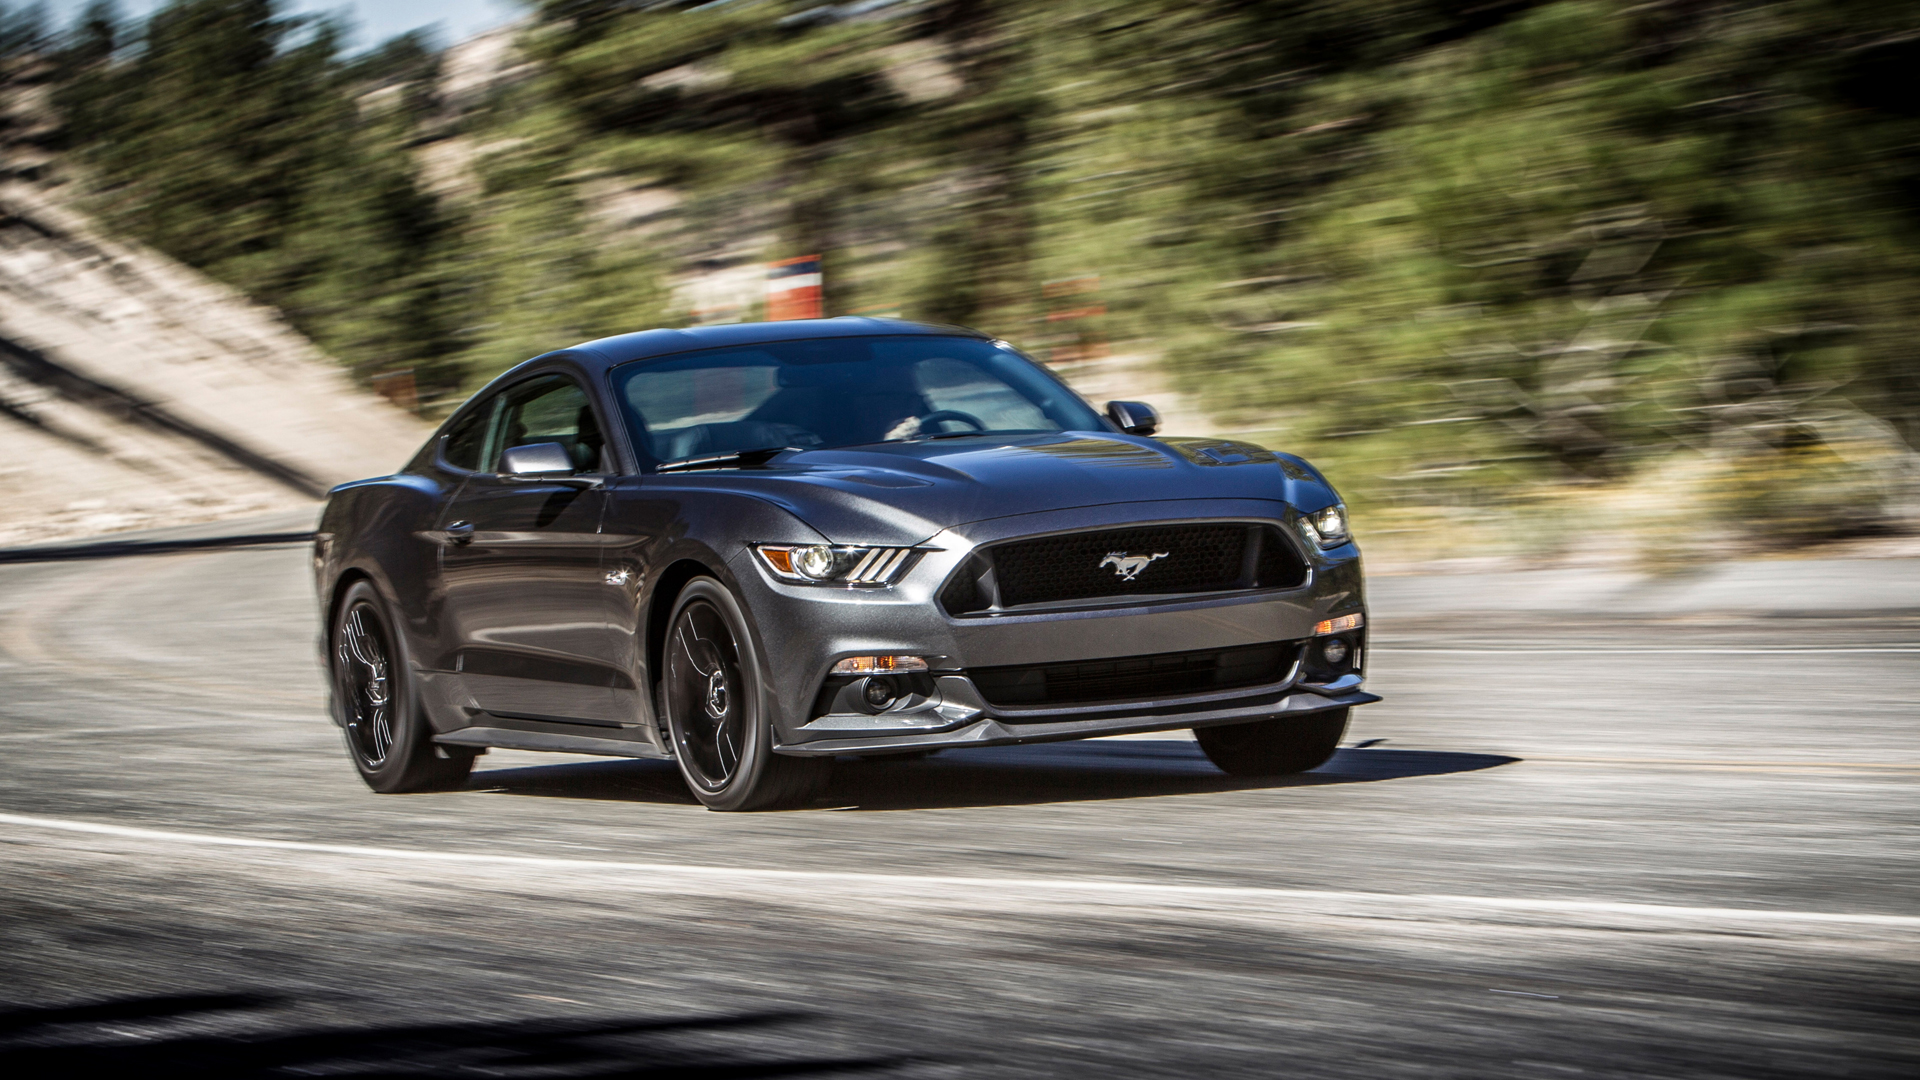 mustang gt wallpaper HD 1920x1080